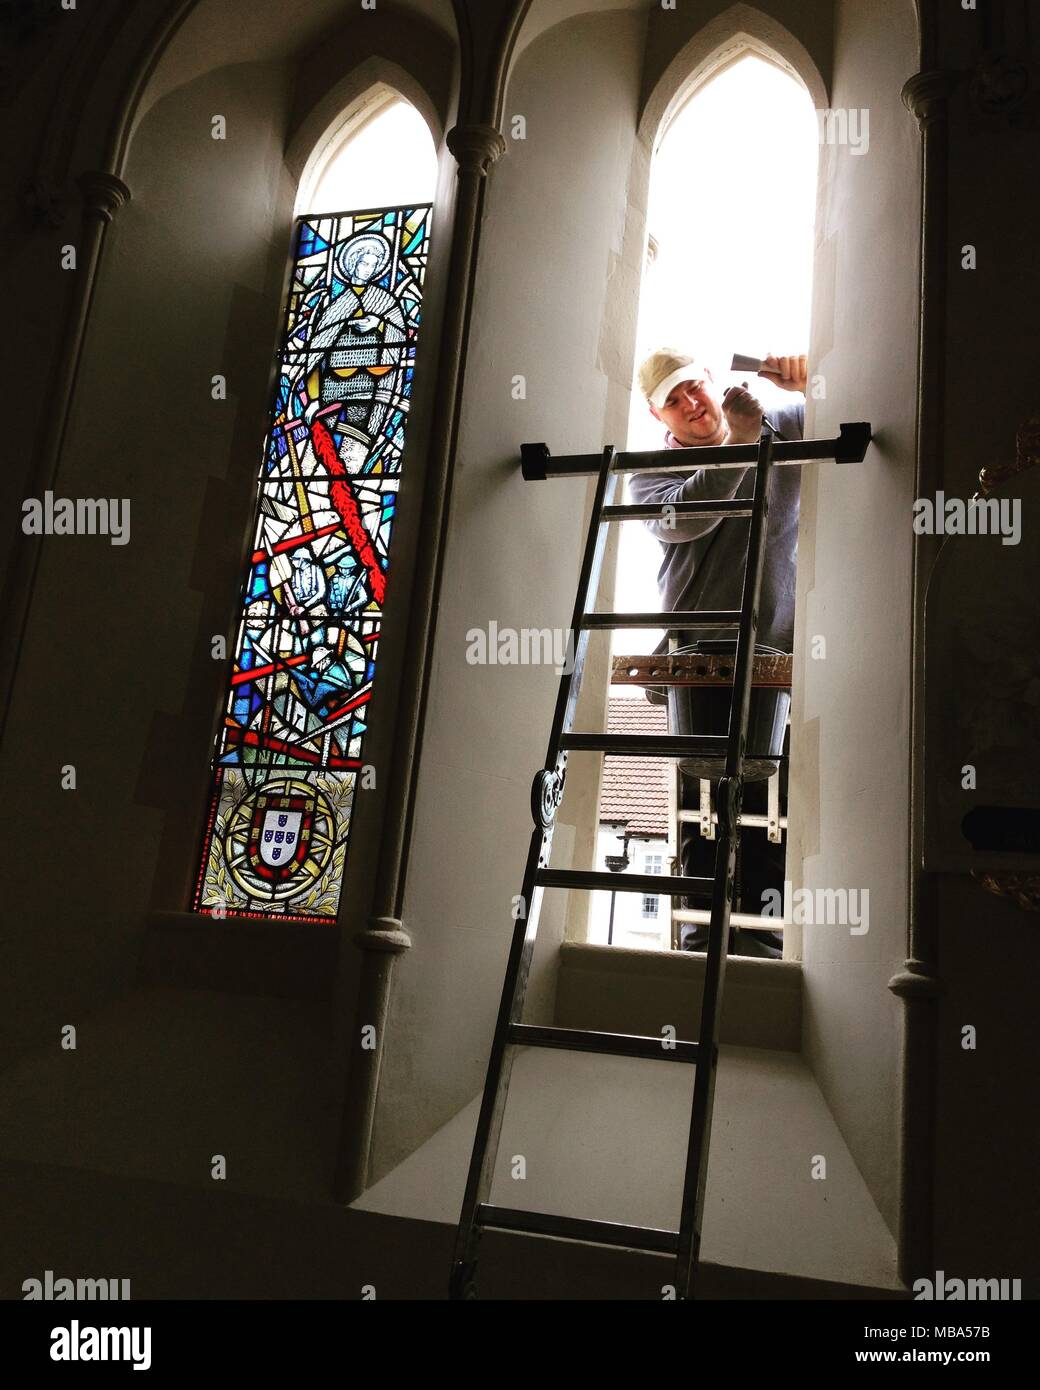 Windows are installed prior to Mass on April 9, 2018, Twickenham UK, to commemorate the centenary of the first very heavy losses of Portuguese soldiers in the First World War, during the Battle of the Lys in Flanders, on April 9, 1918. St. James's Catholic church in Twickenham has commissioned windows by Stained Glass Designers Caroline & Tony Benyon. The windows were then by Bishop John Wilson titular Bishop of Lindisfarne, during during a special Mass. A plaque was unveiled jointly by His Excellency the Ambassador Manuel Lobo Antunes, Portuguese Ambassador to the UK, & by Field Marshal The L - Stock Image